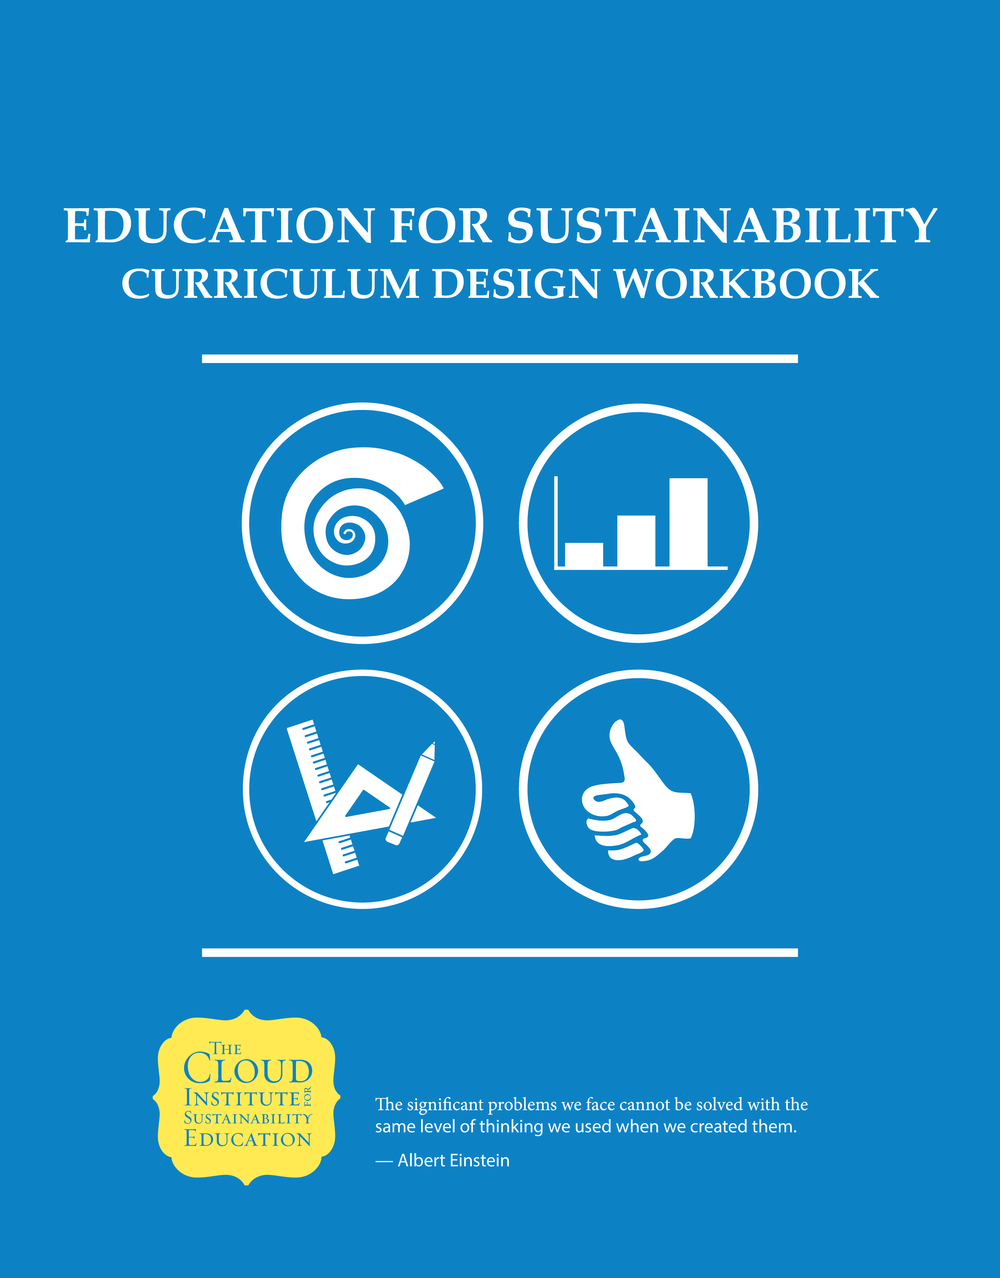 EfS Curriculum Design Workbook 2016.png